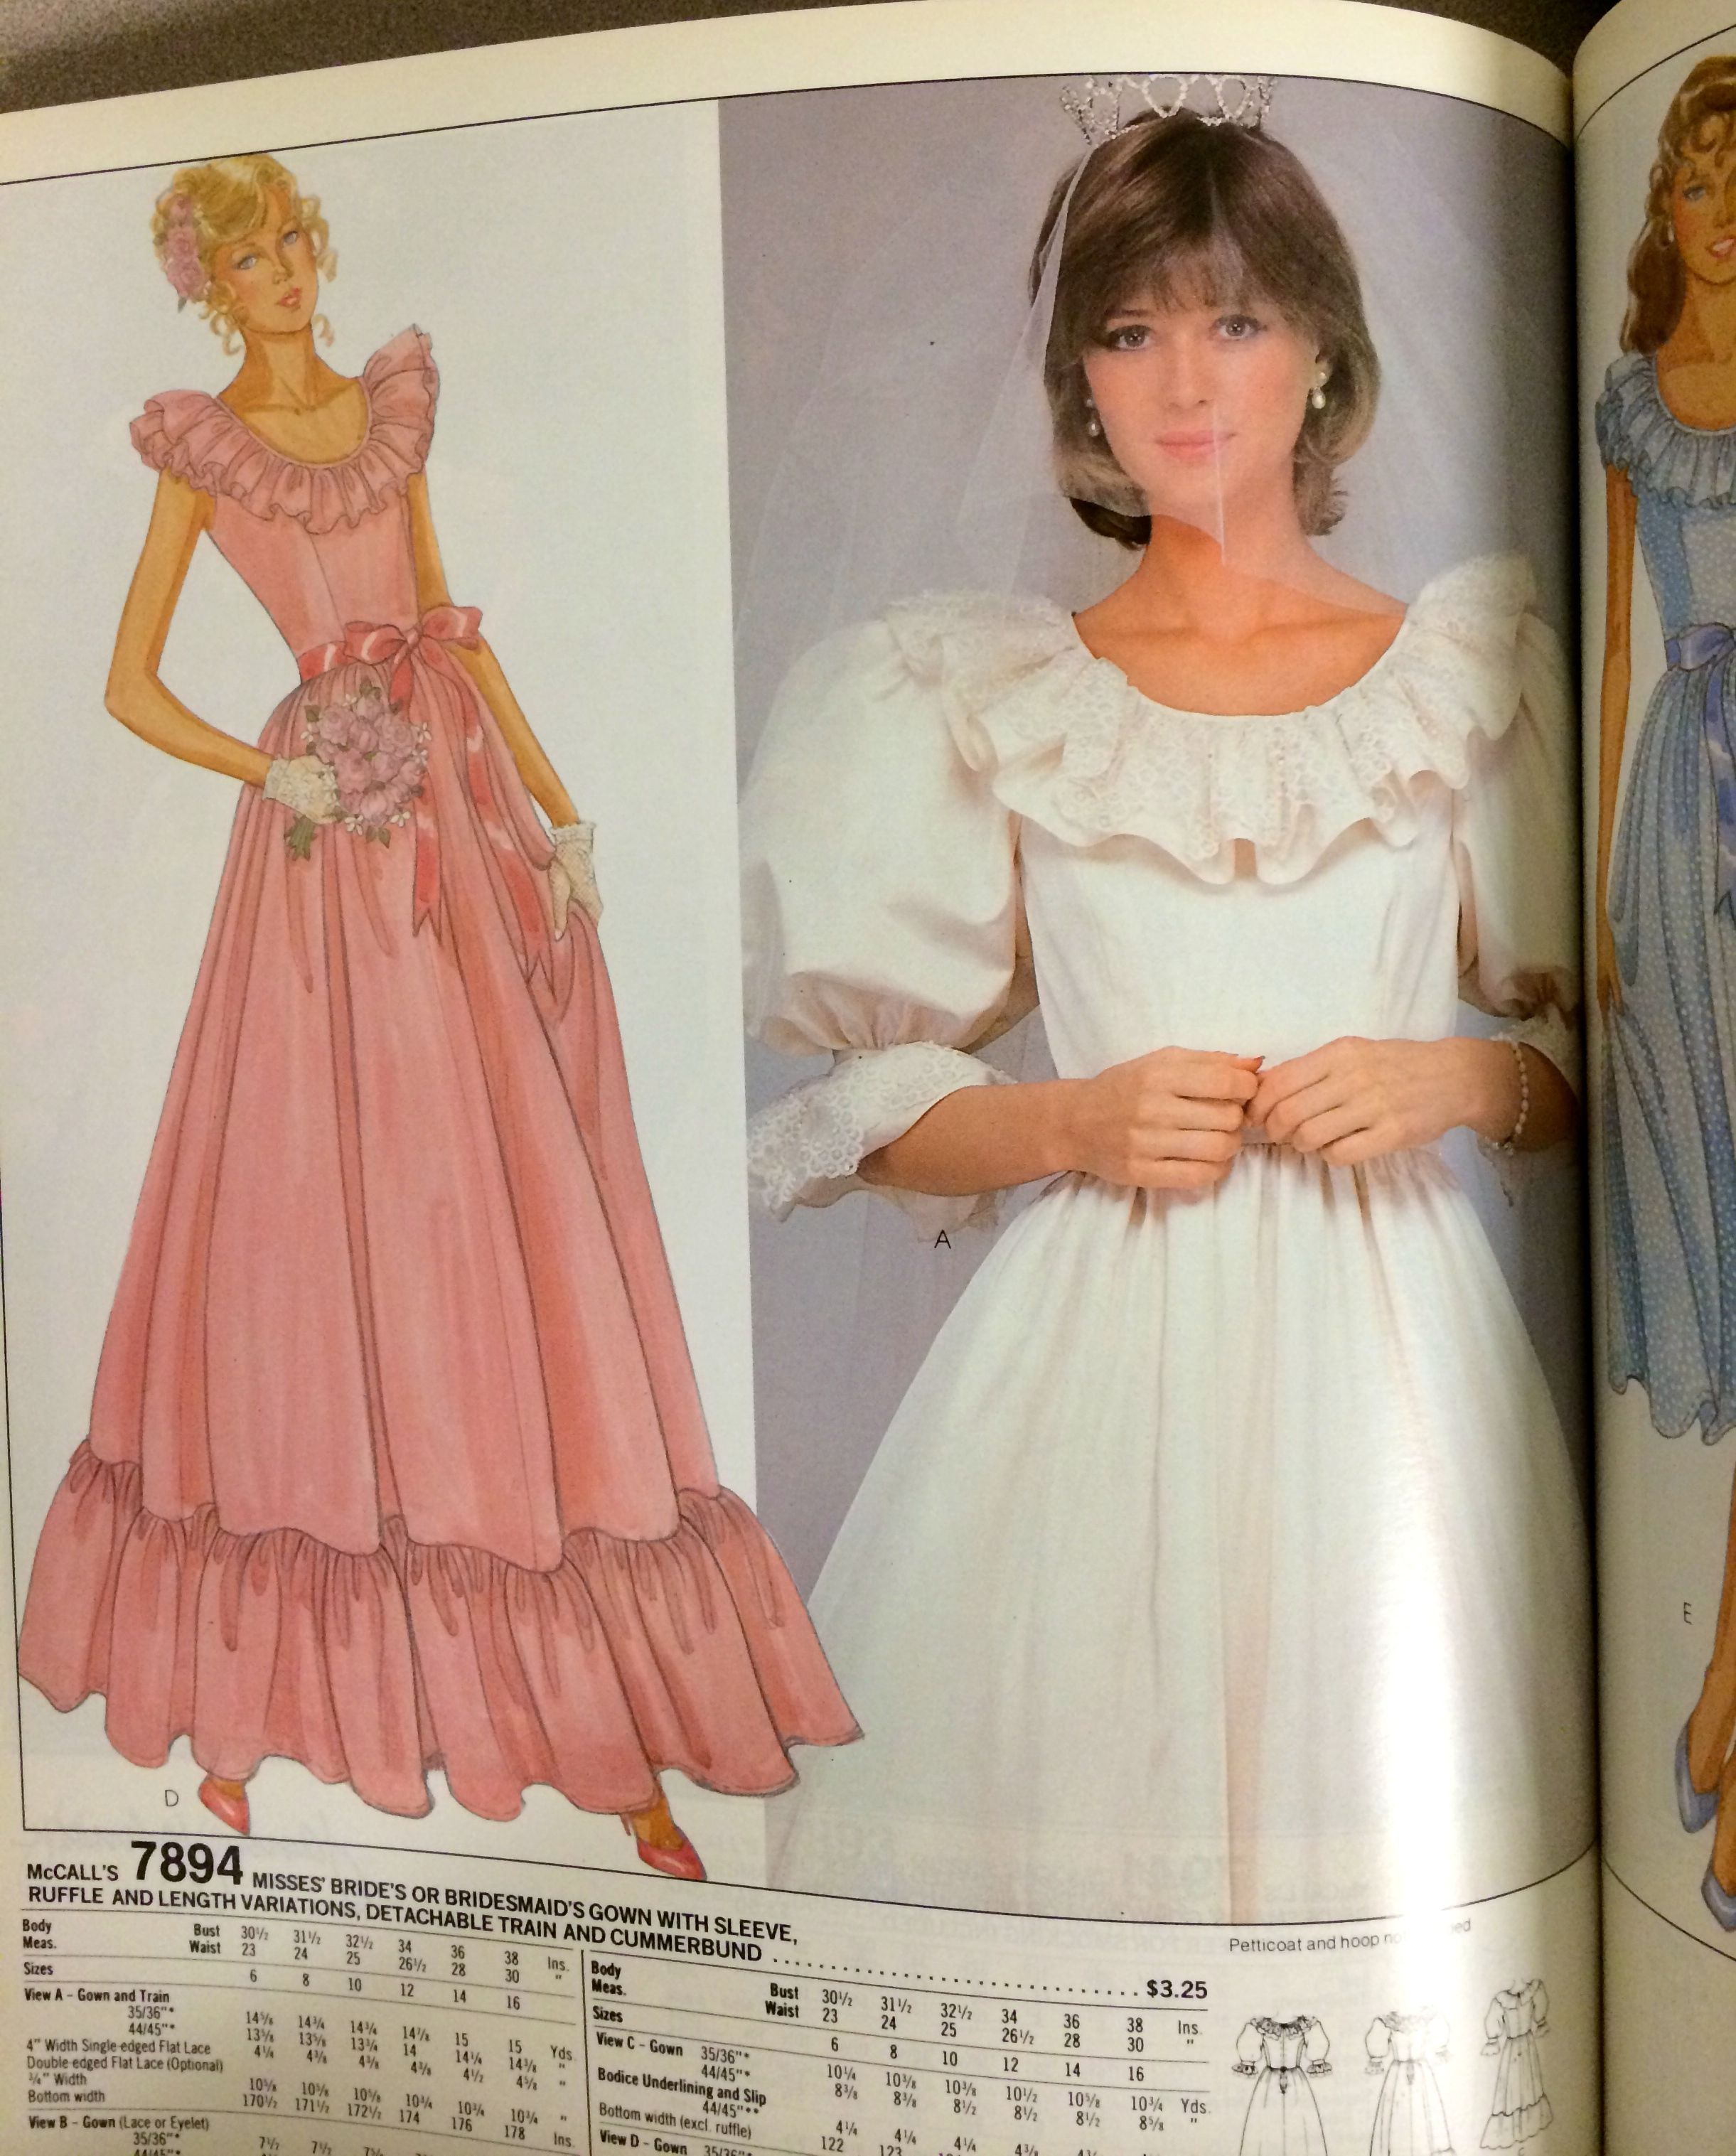 Wedding gown pattern from a mccallus catalog mccalls